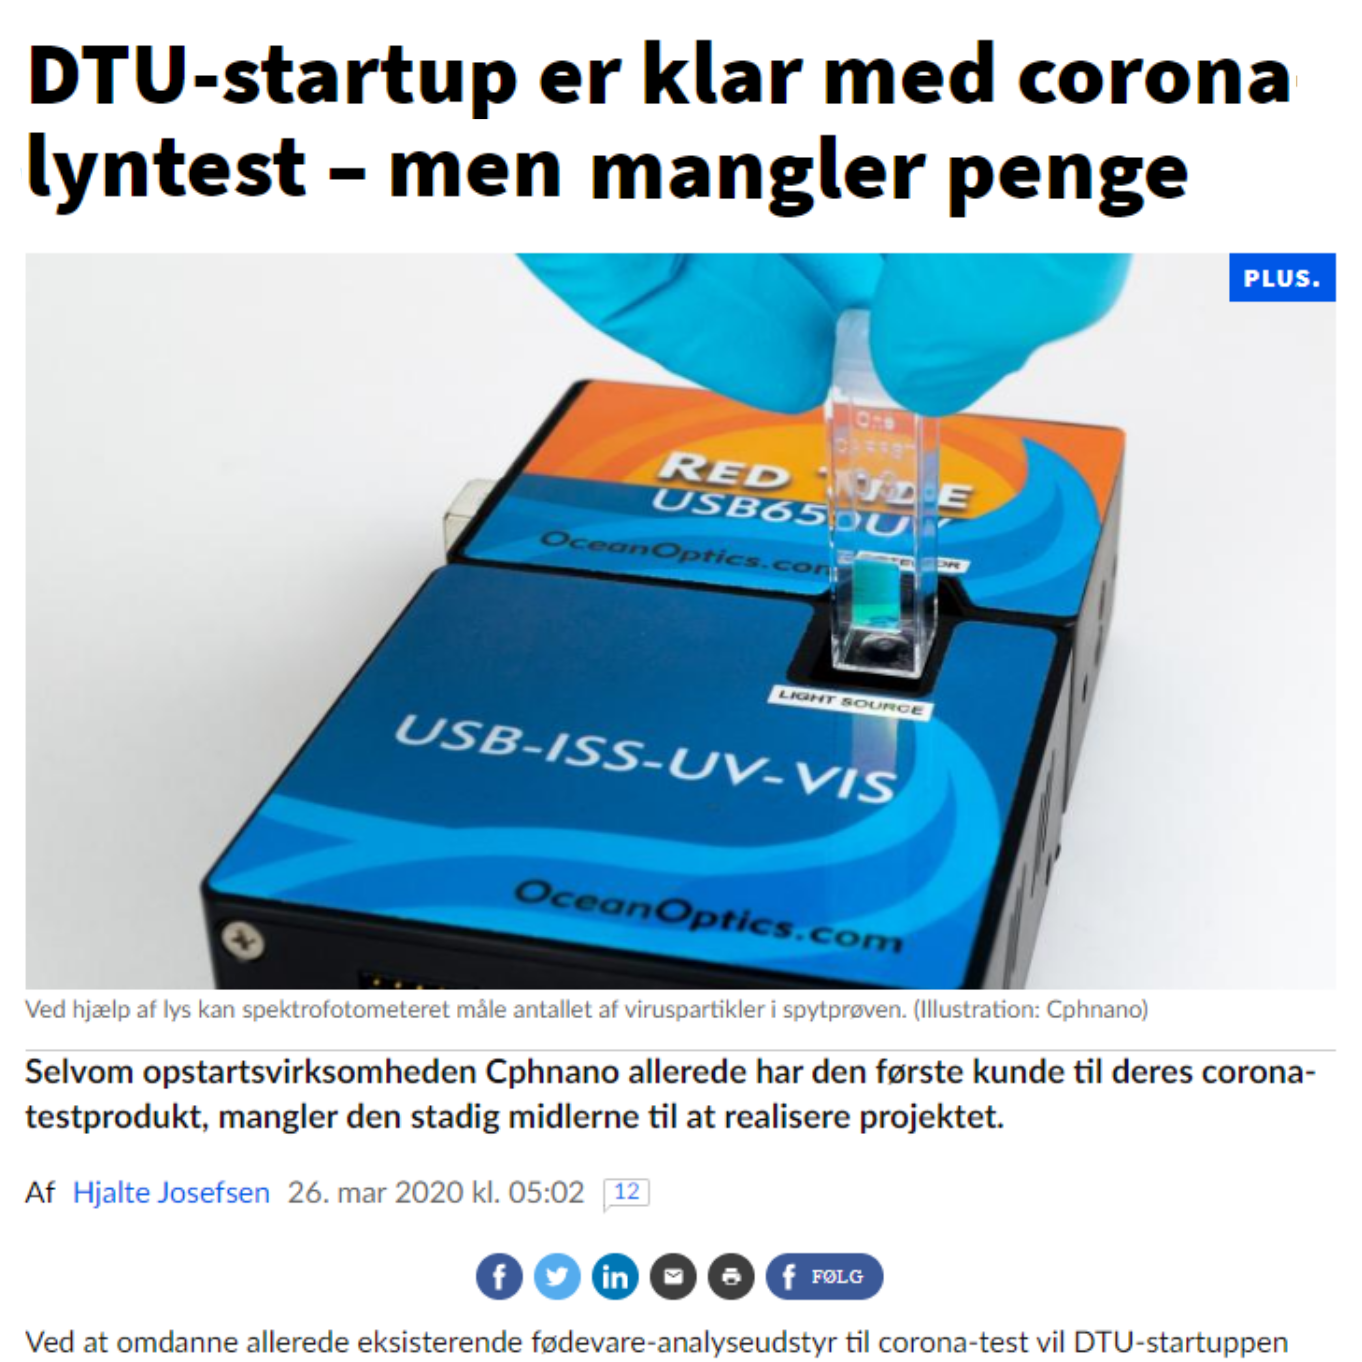 Article in Ingeniøren on our COVID-19 test